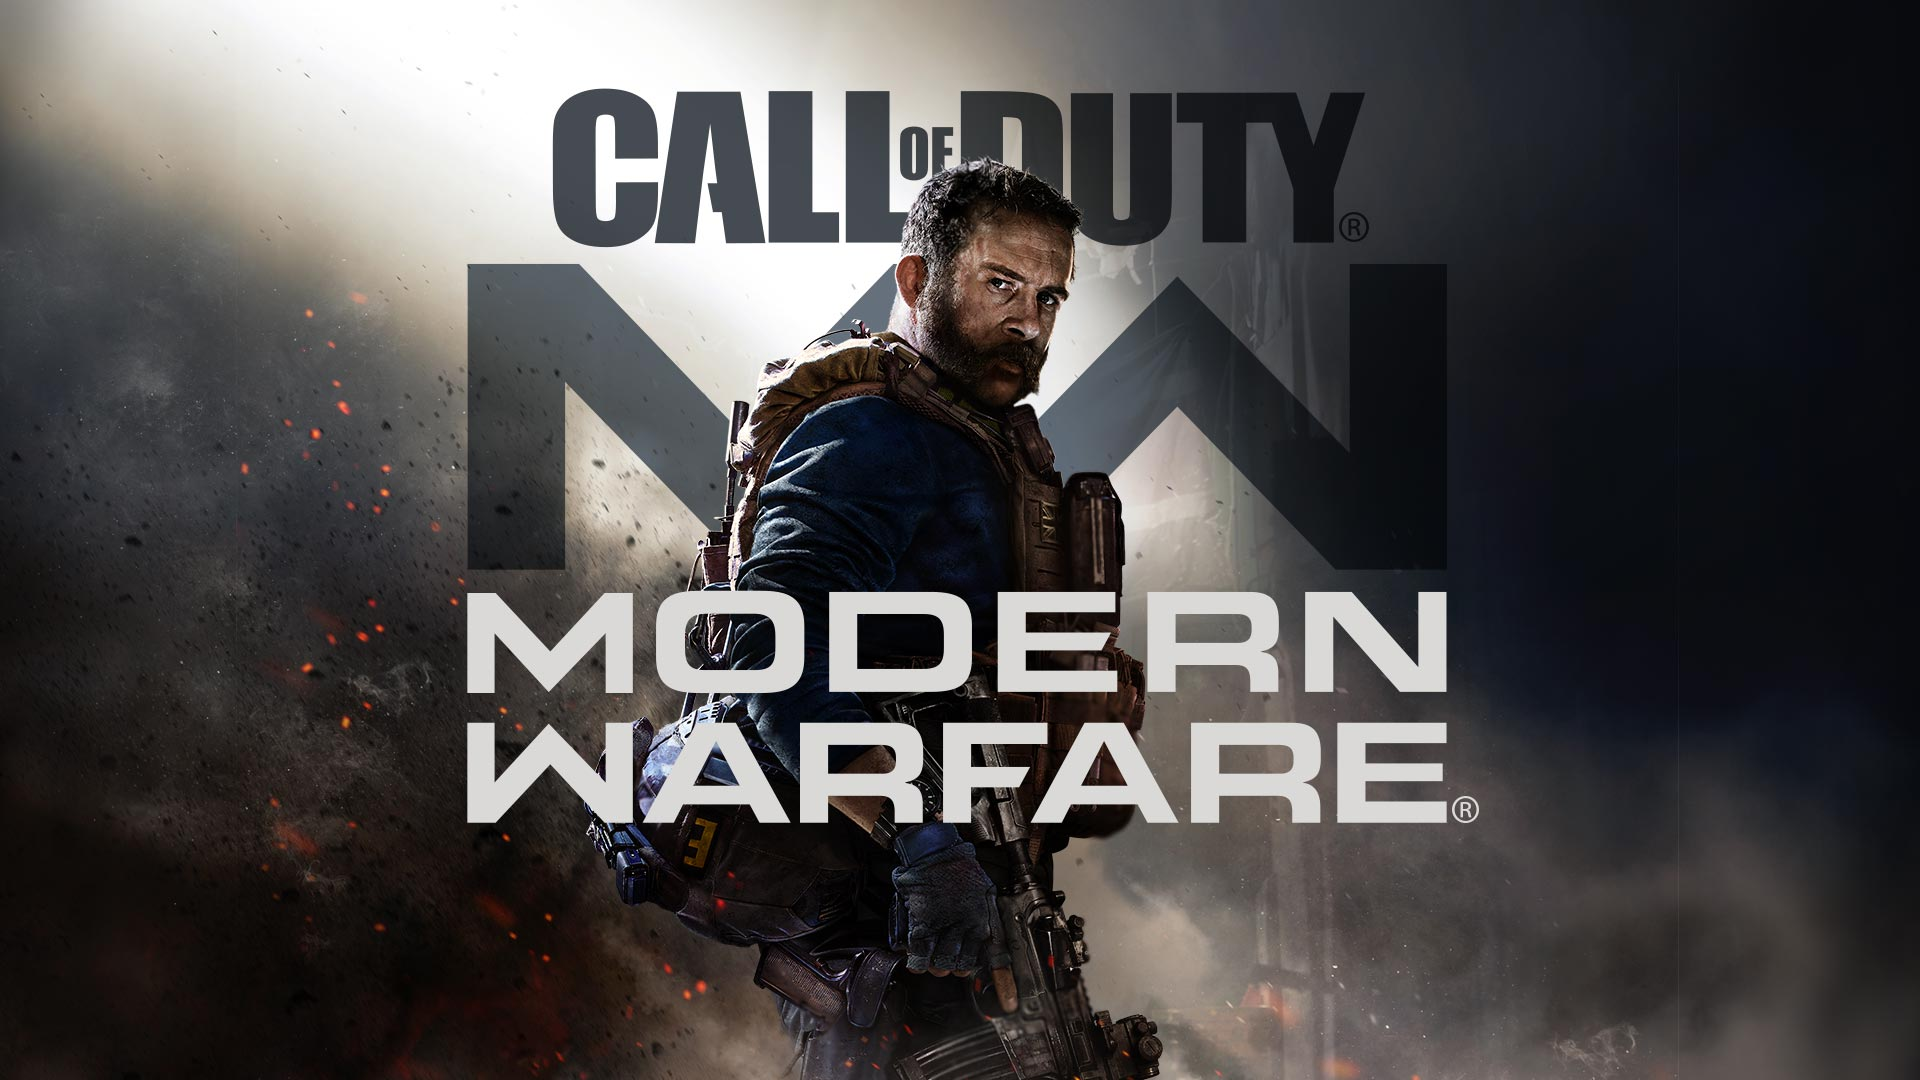 Call of Duty Warzone PC Version Full Free Game Download